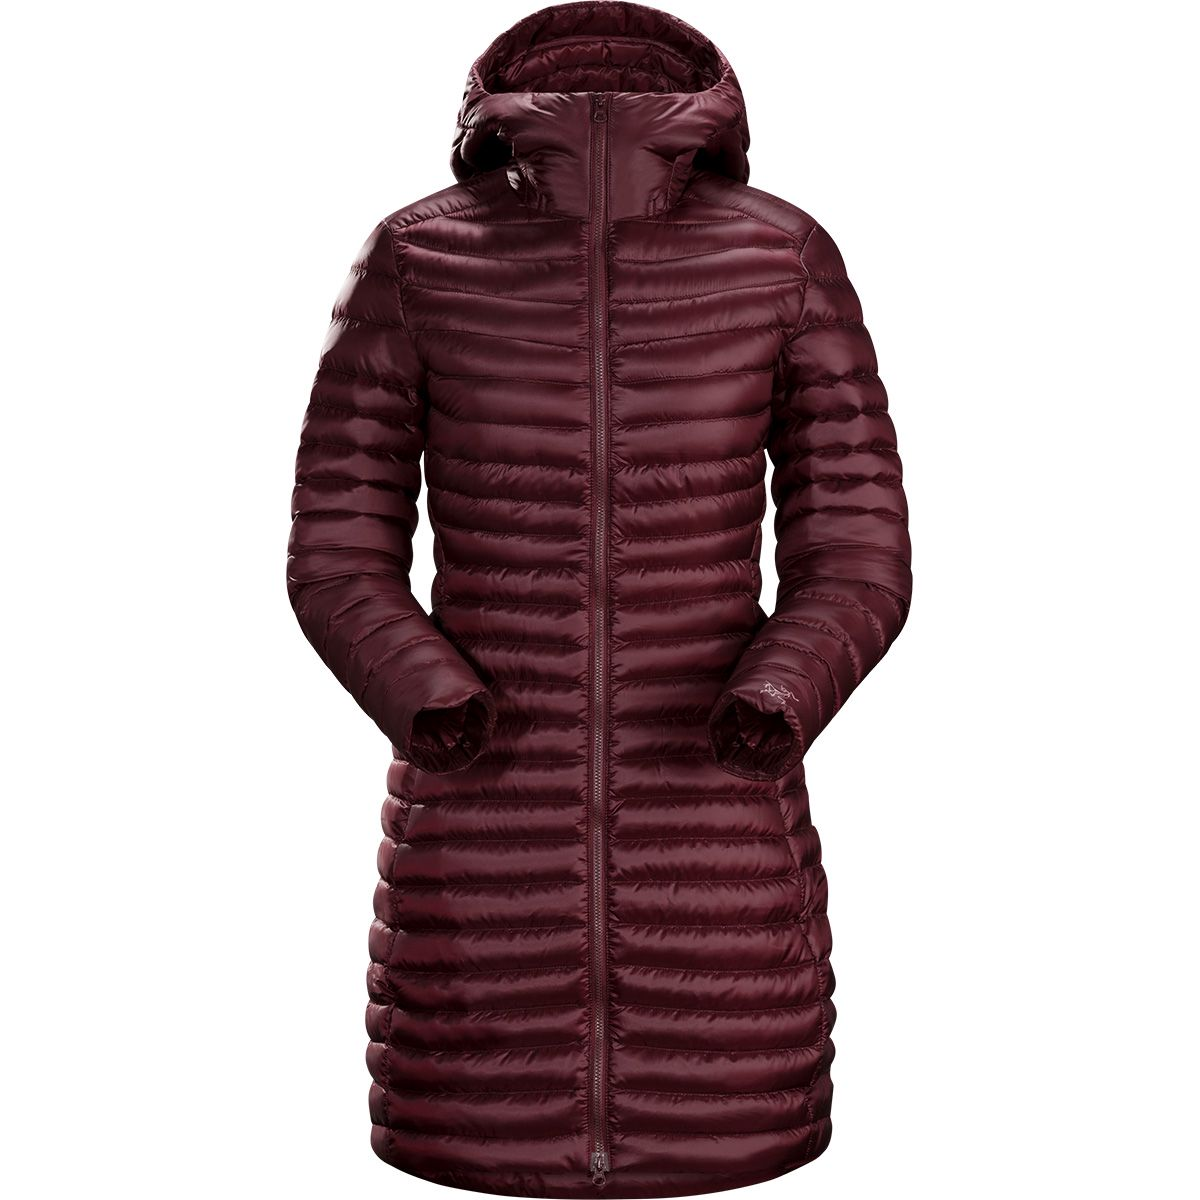 Arcteryx Damen Nuri Mantel (Größe S) | Isolationsjacken > Damen